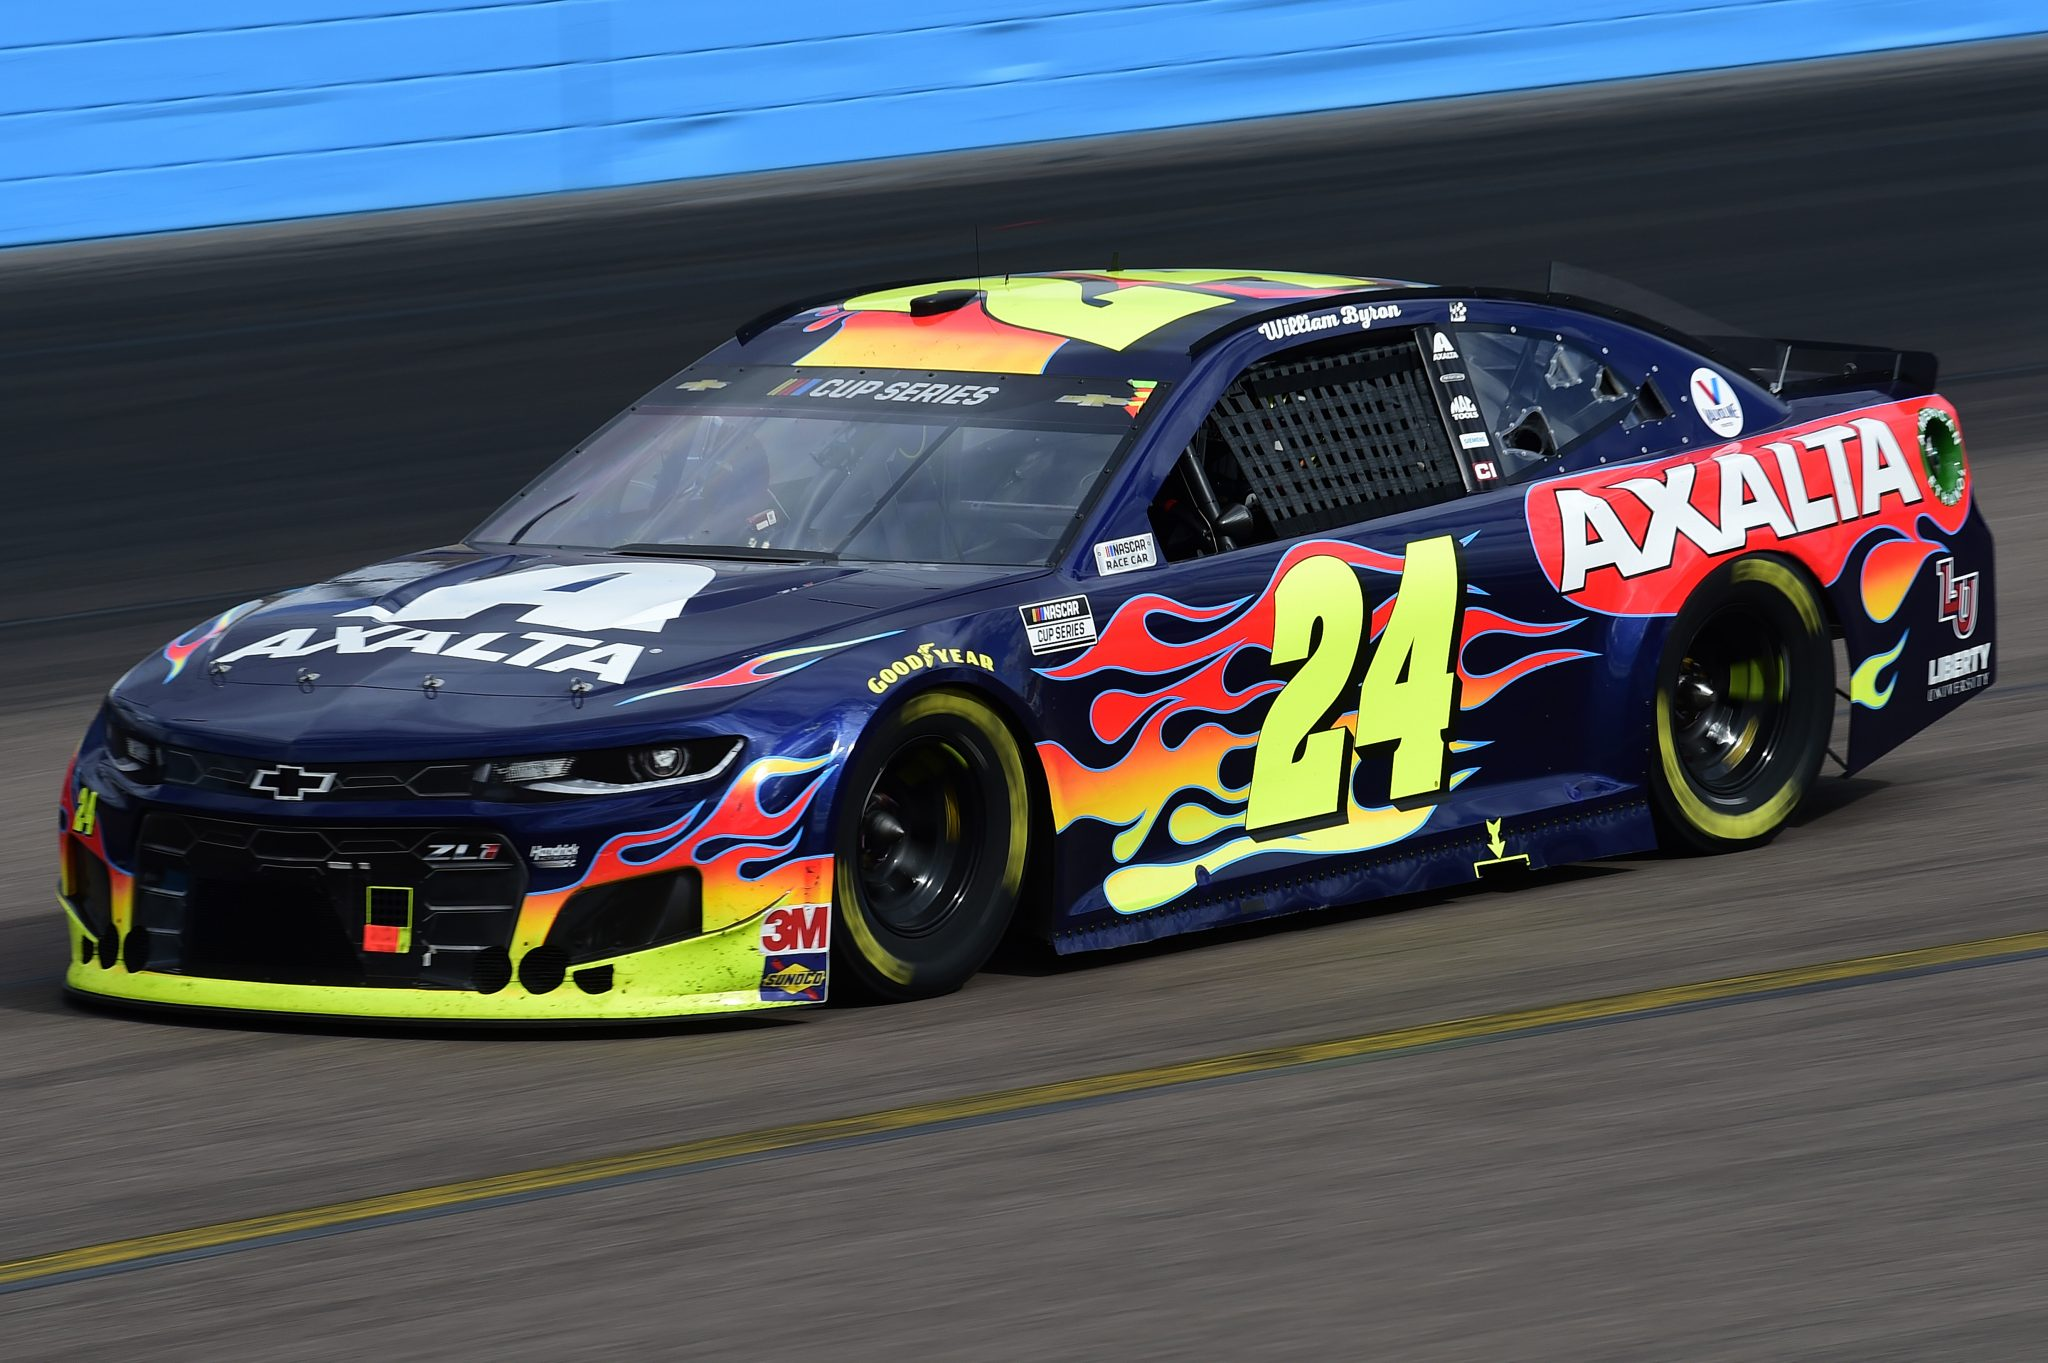 AVONDALE, ARIZONA - NOVEMBER 08: William Byron, driver of the #24 Axalta Chevrolet, drives during the NASCAR Cup Series Season Finale 500 at Phoenix Raceway on November 08, 2020 in Avondale, Arizona. (Photo by Jared C. Tilton/Getty Images) | Getty Images